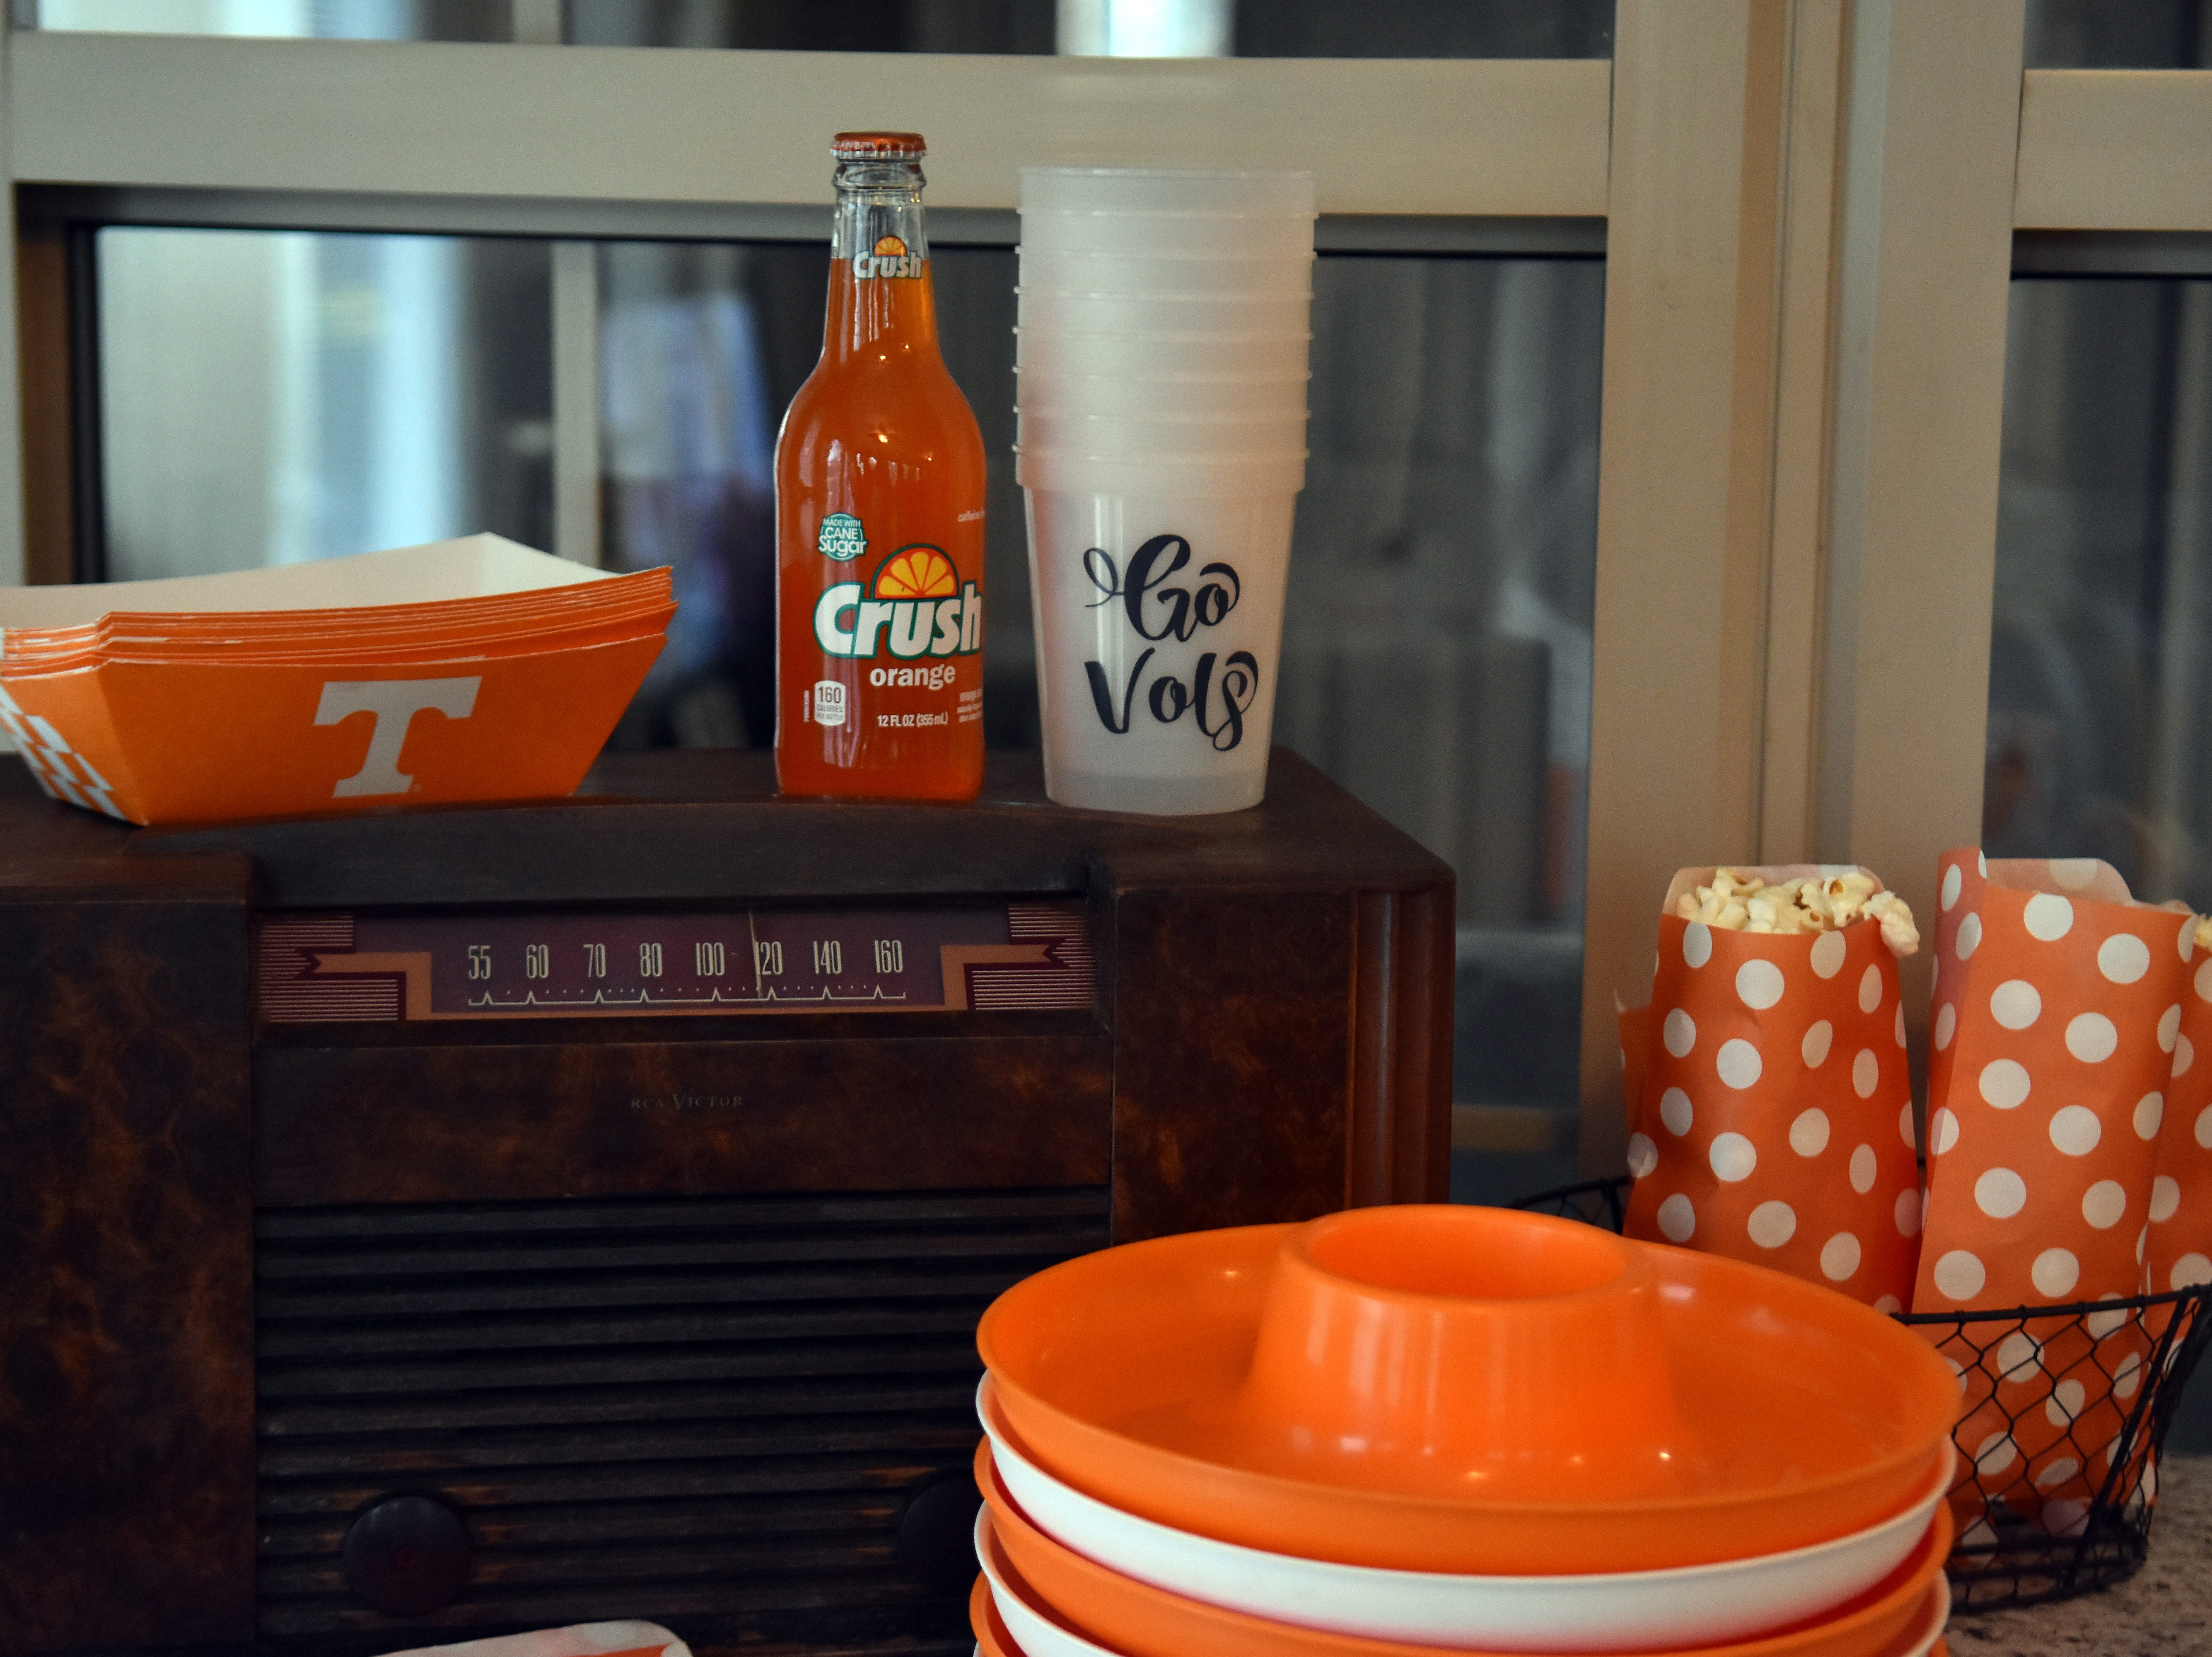 This vintage radio makes an interesting display at a food station. The cups (which turn orange when filled with a cold beverage) can be keepsakes for guests.